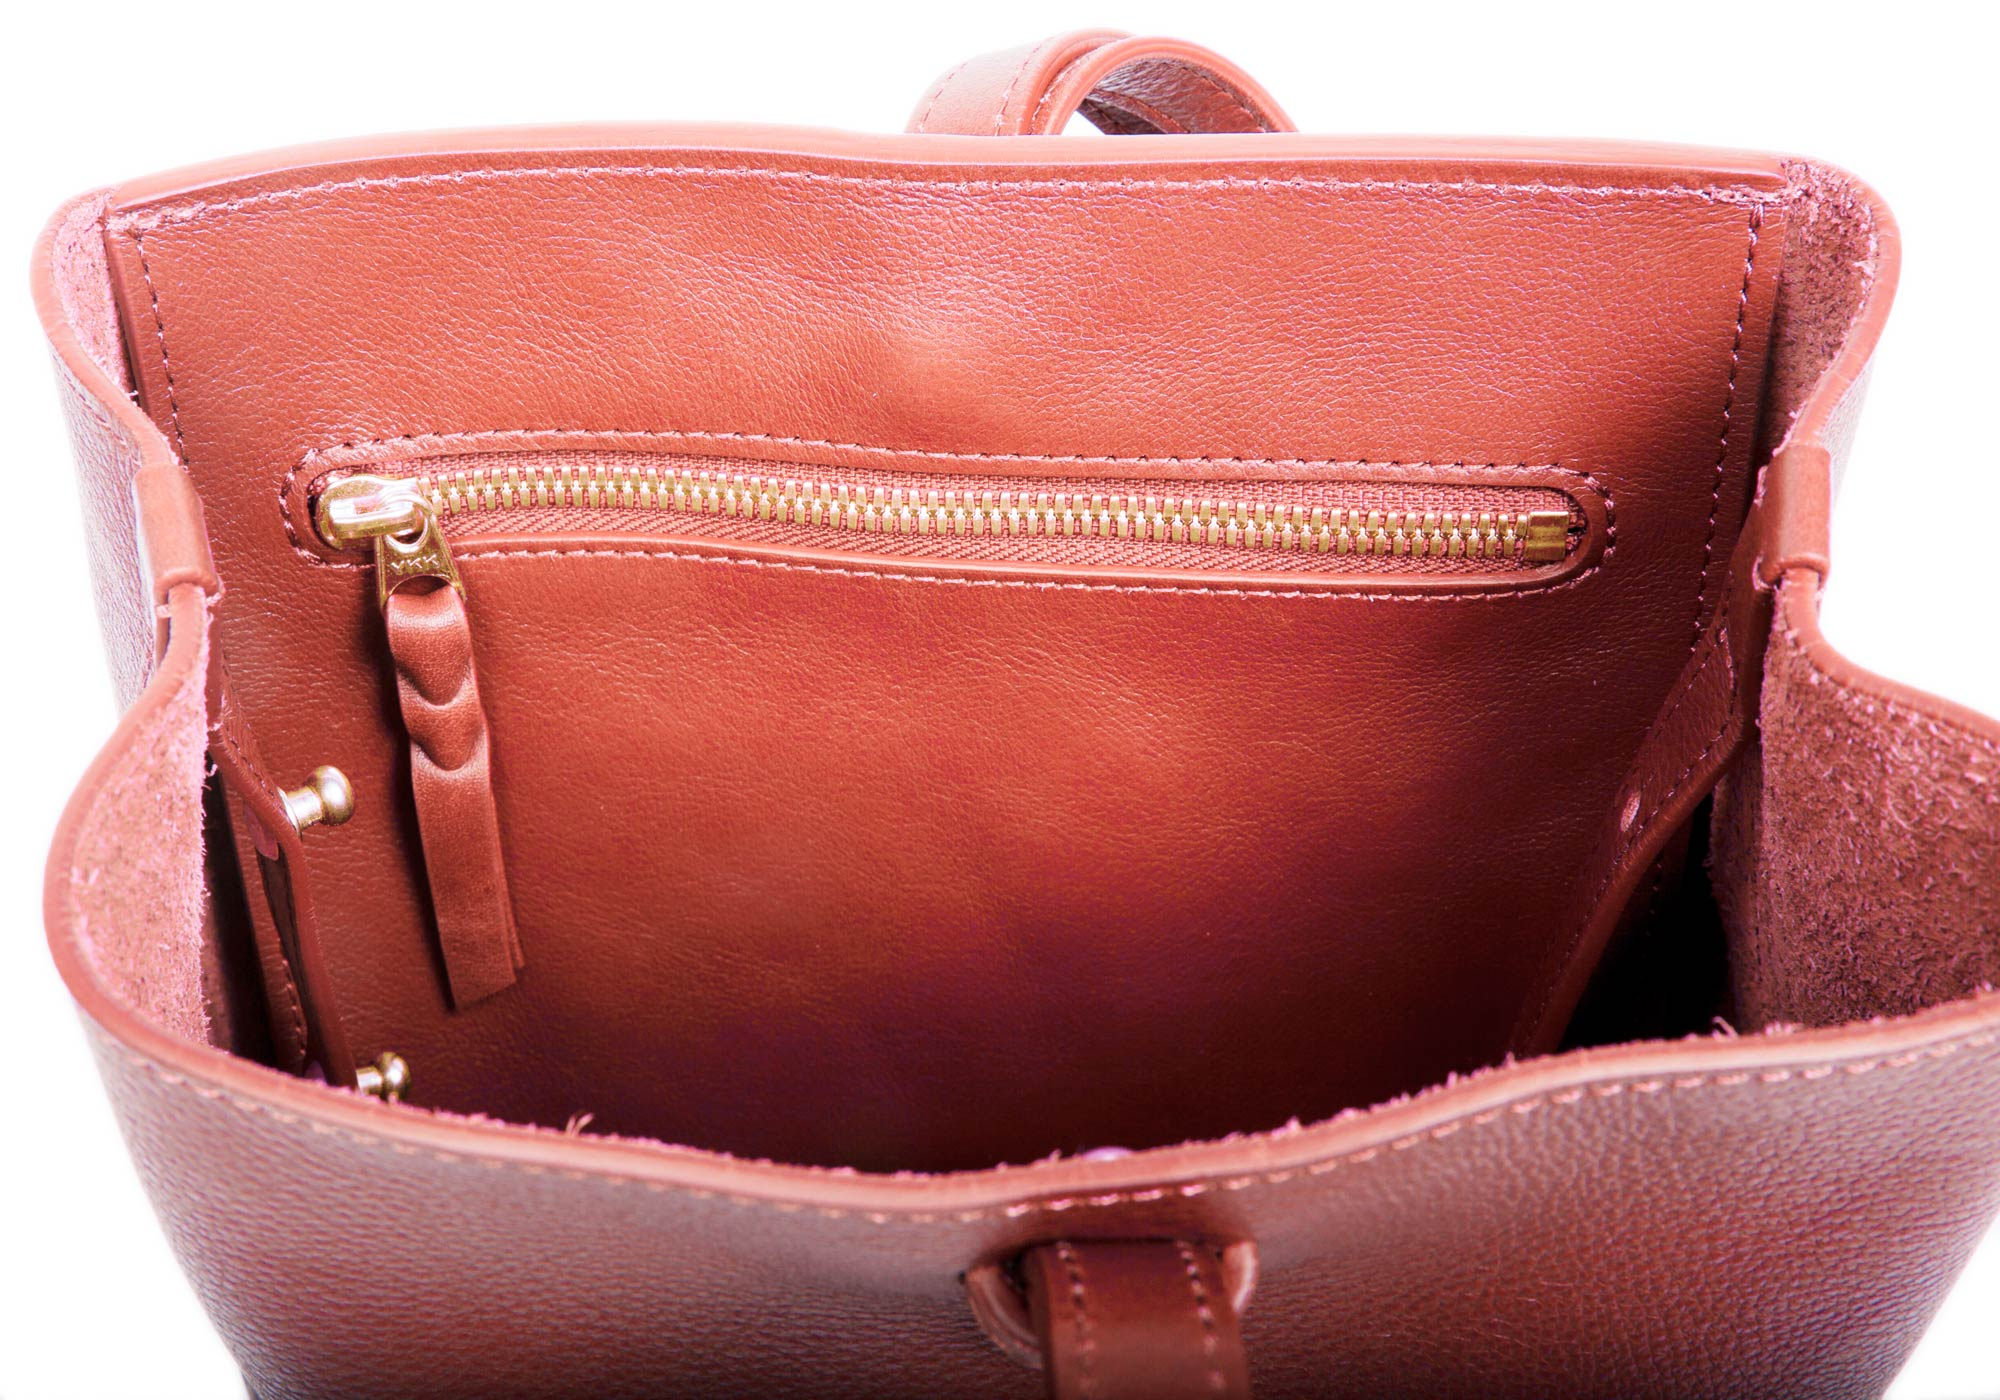 The Mini Sling Backpack Rosewood